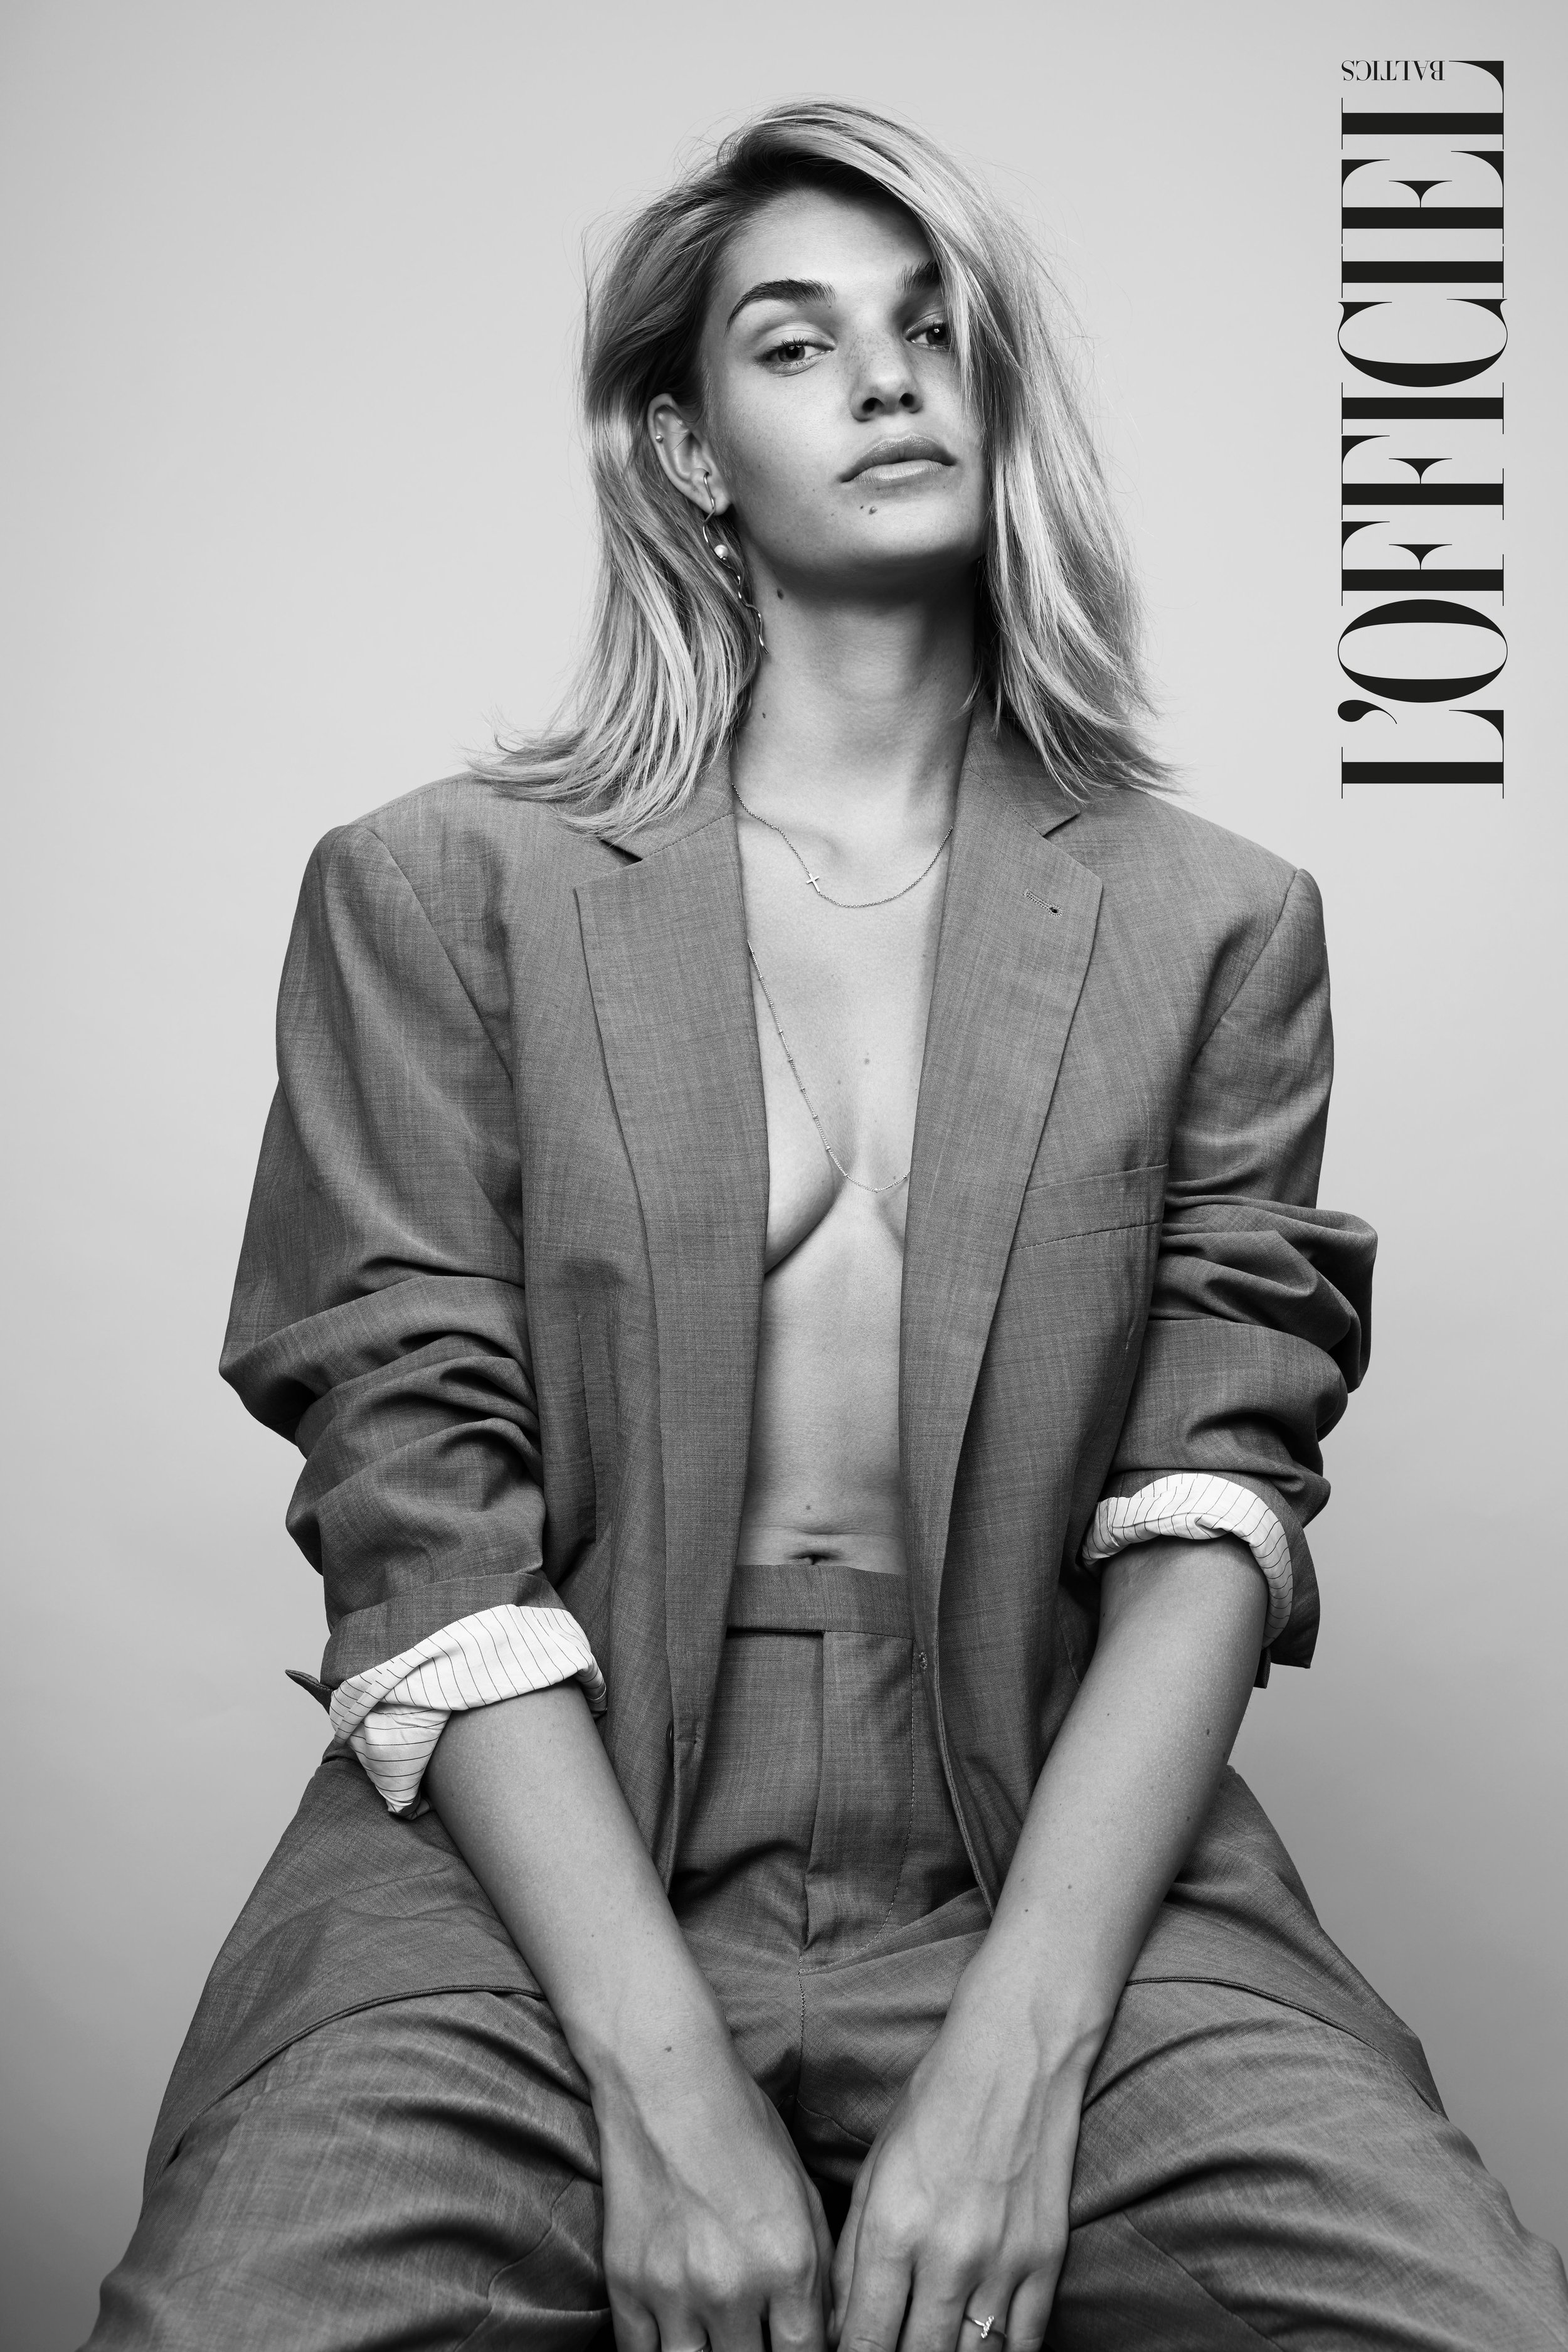 L'Officiel | Luisa Hartema | Munich Models